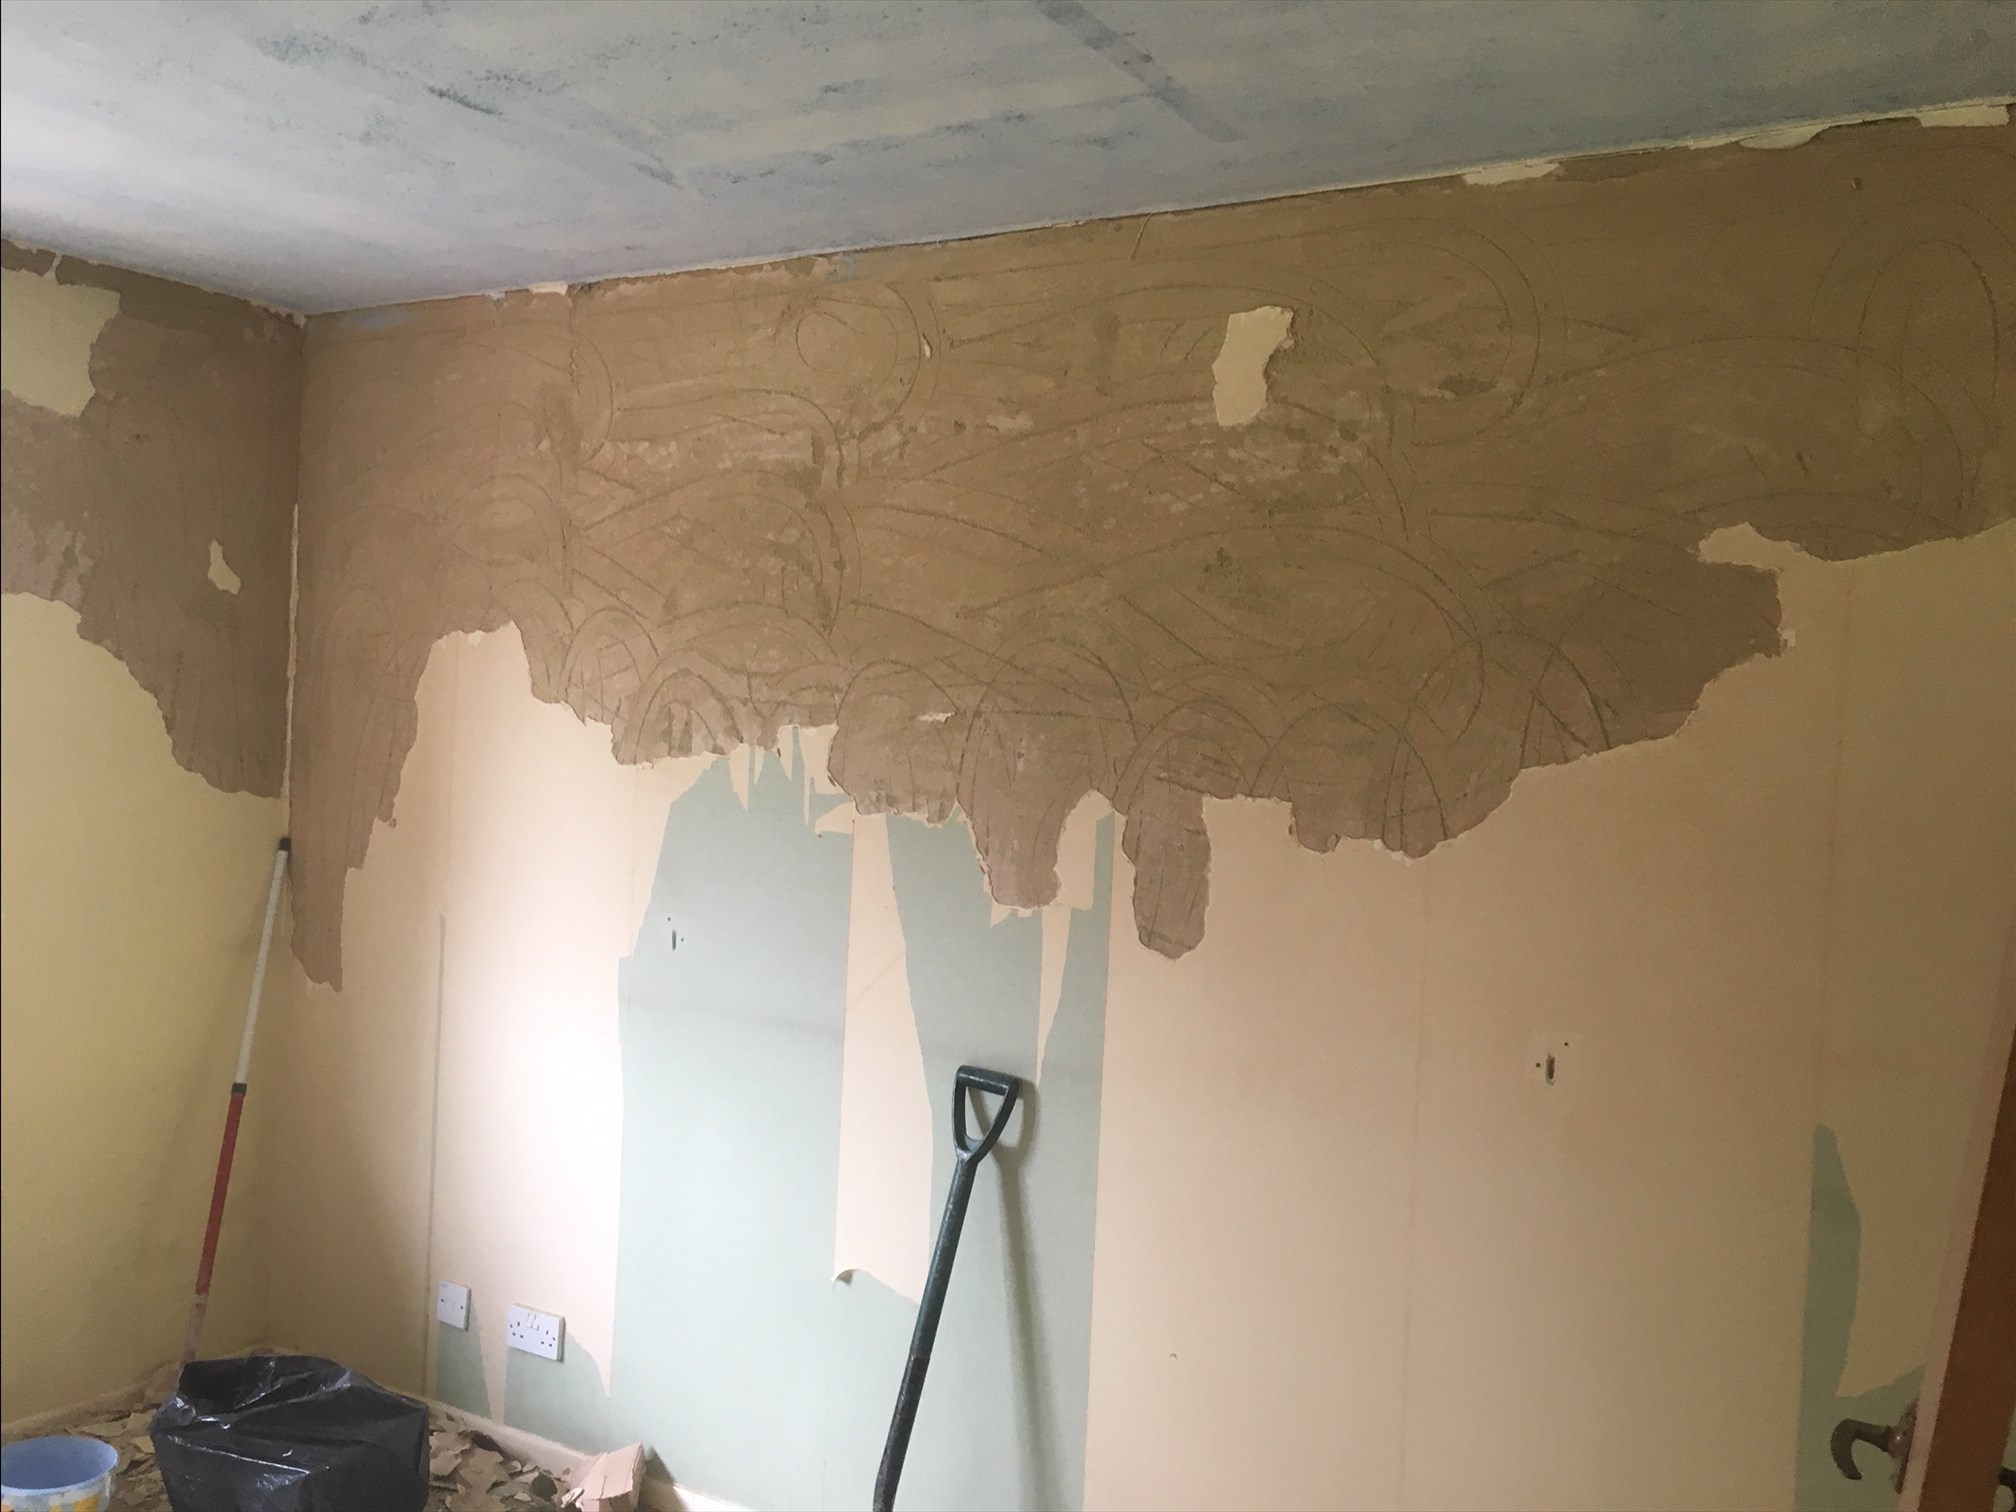 Partially plastered wall with some tools visible on the floor.